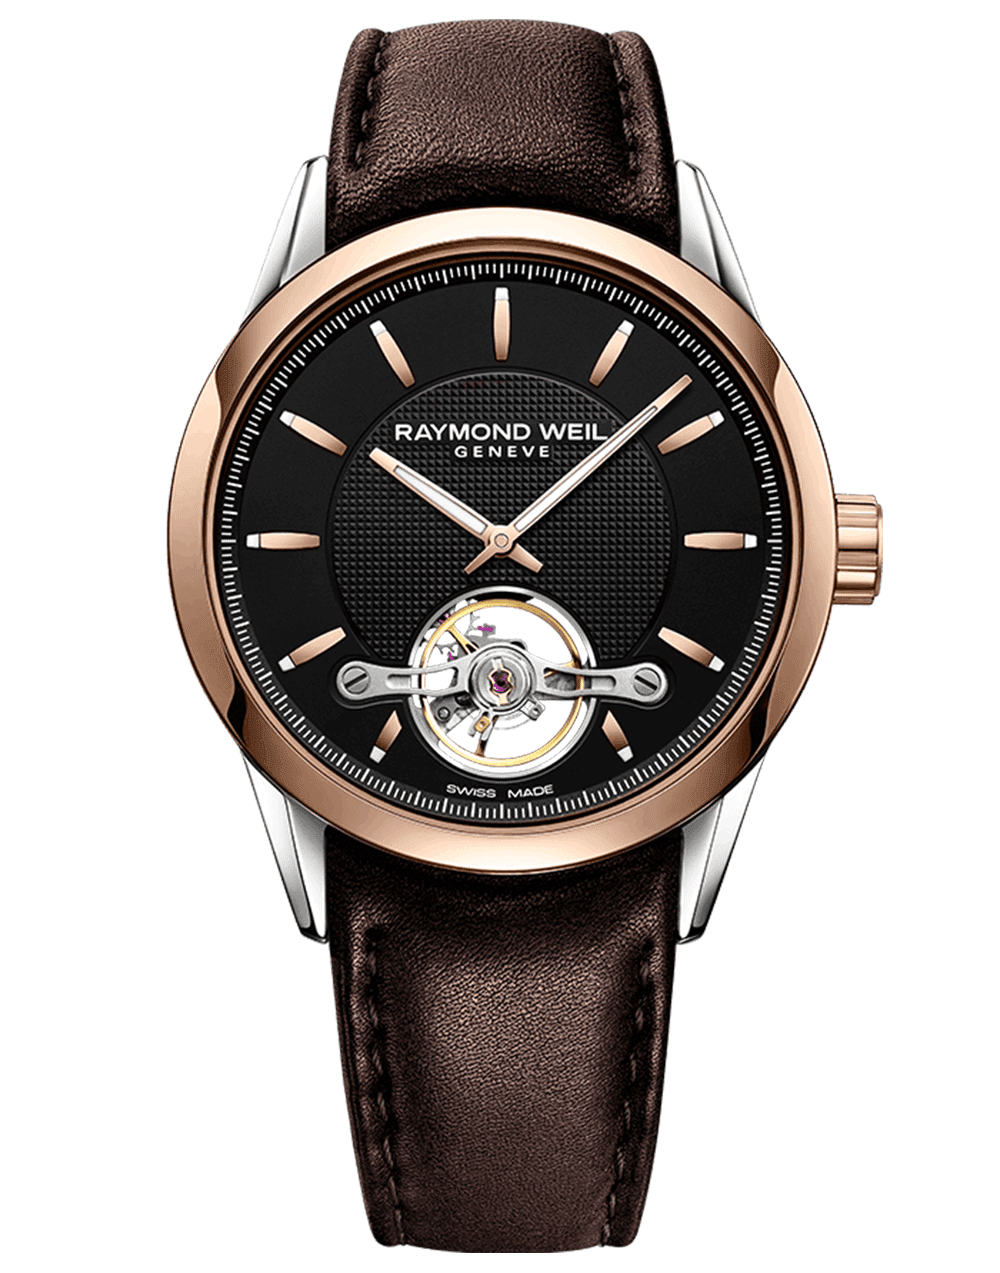 RAYMOND WEIL Freelancer Luxury Swiss Watch